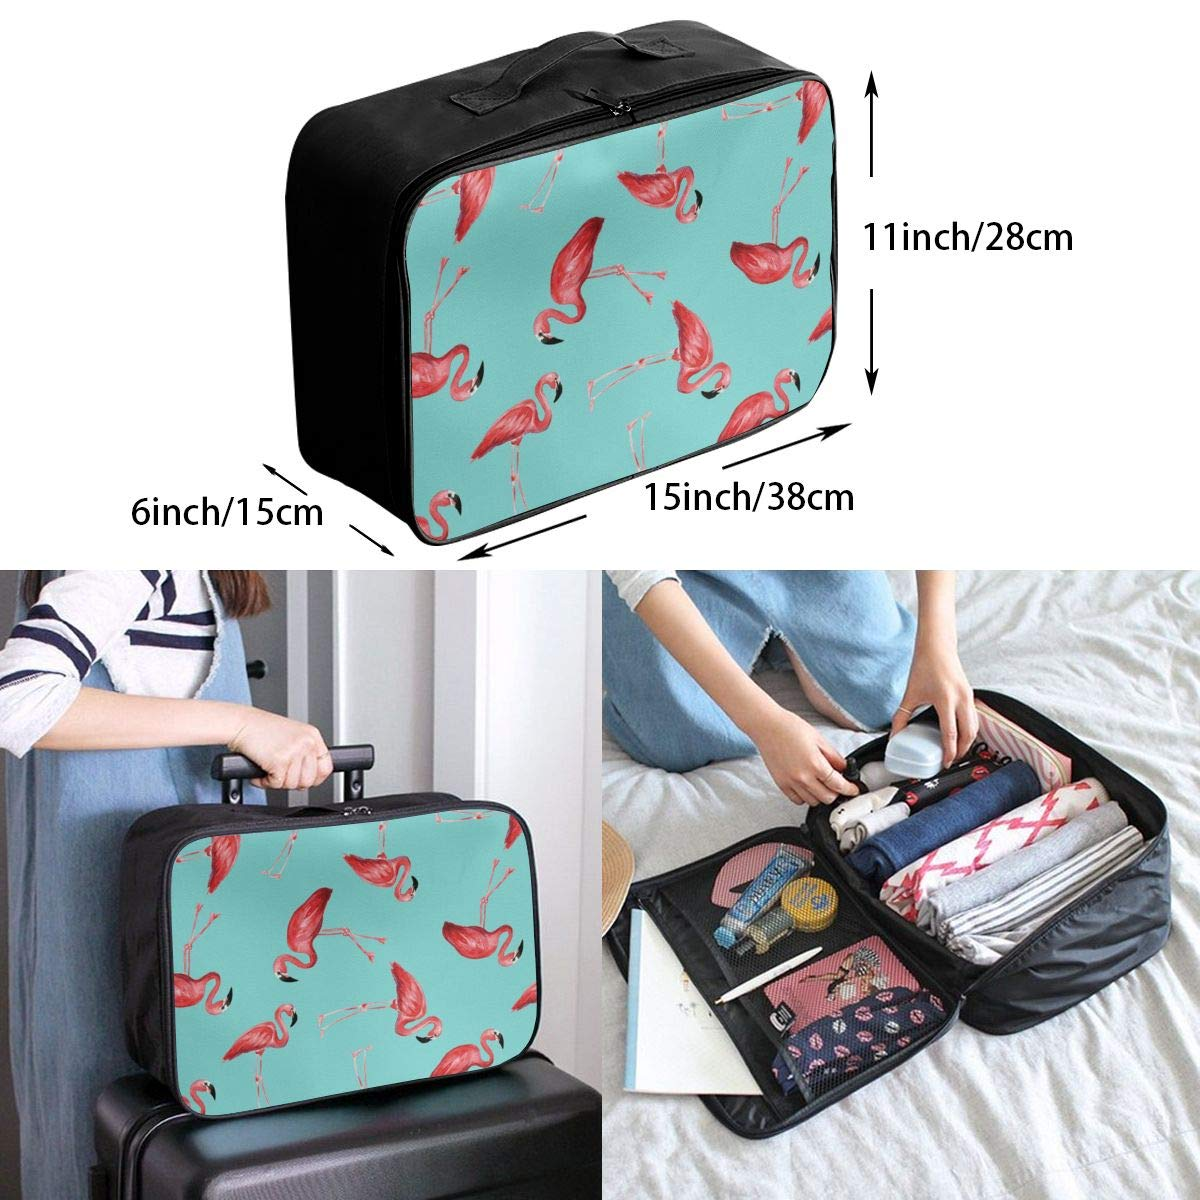 Travel Duffel Bag Waterproof Fashion Lightweight Large Capacity Portable Luggage Bag Flamingos In Blue